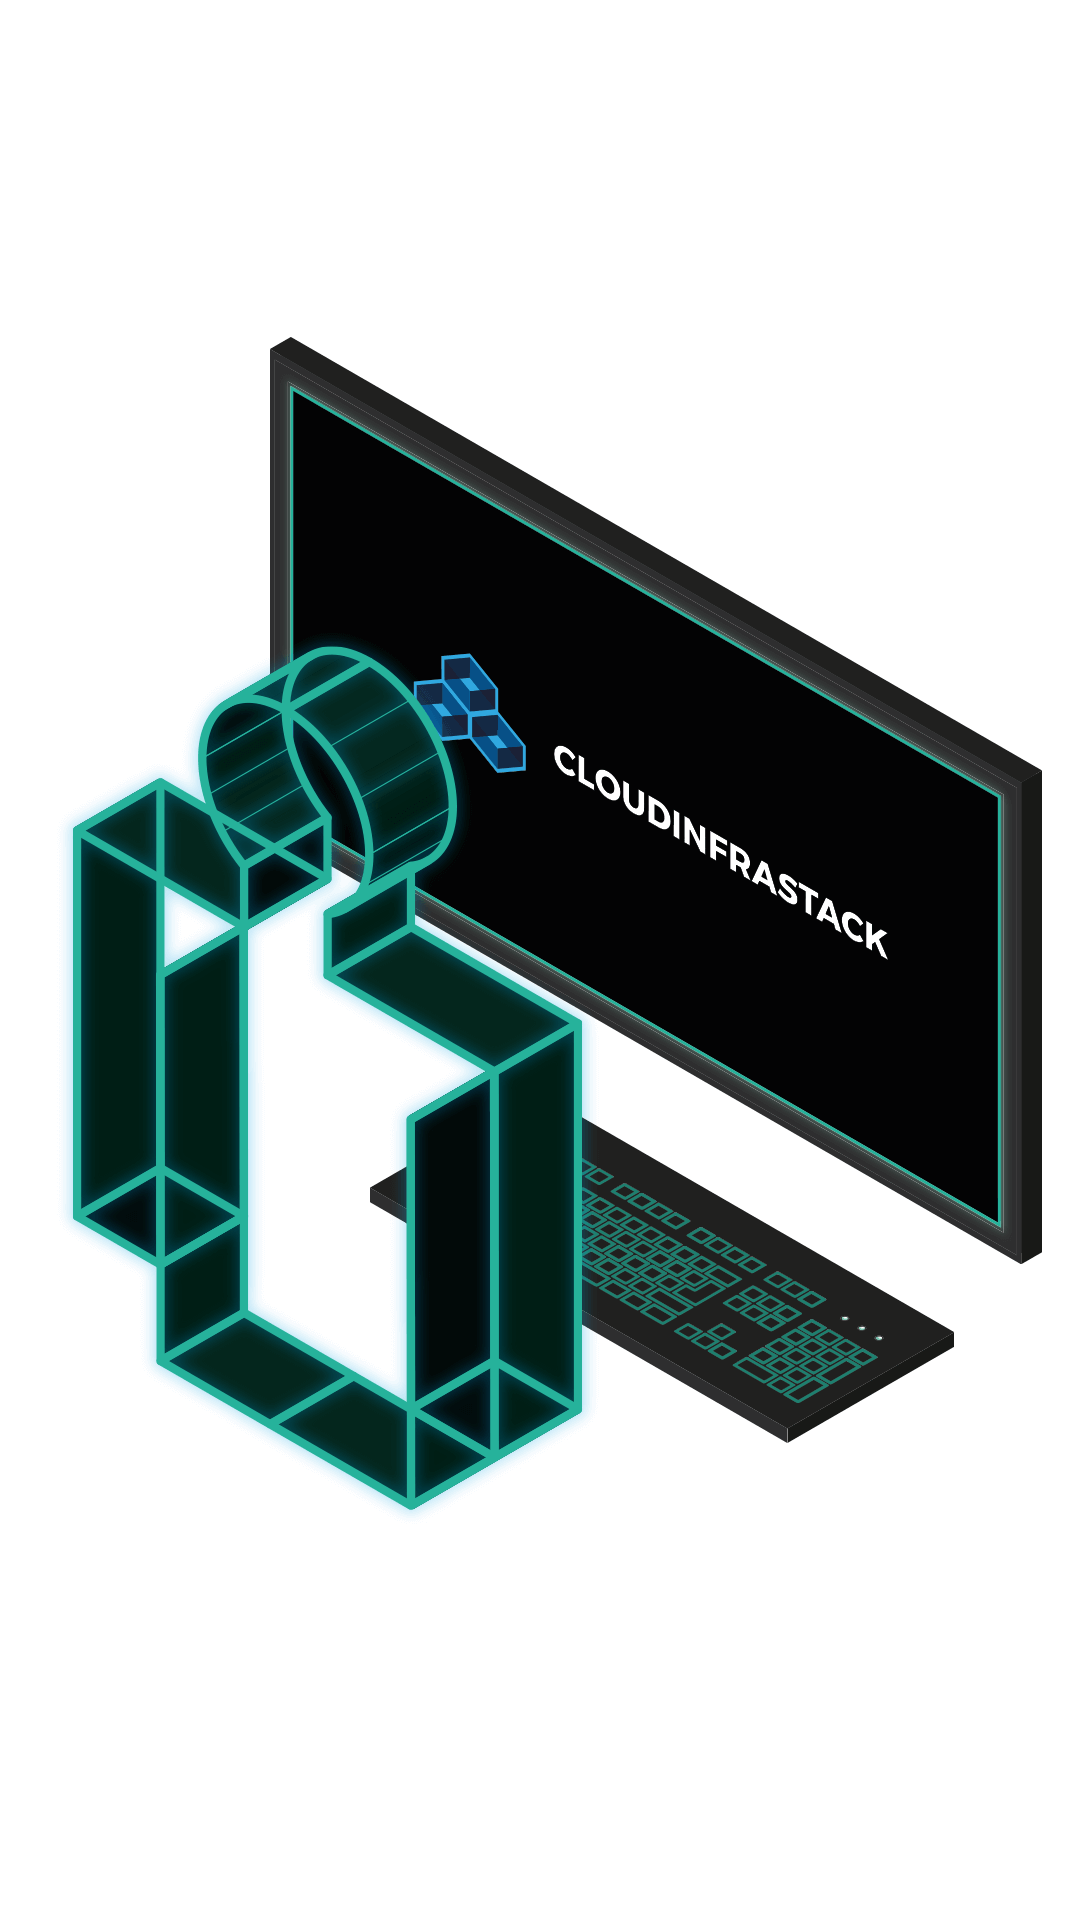 cloudinfrastack user and computer